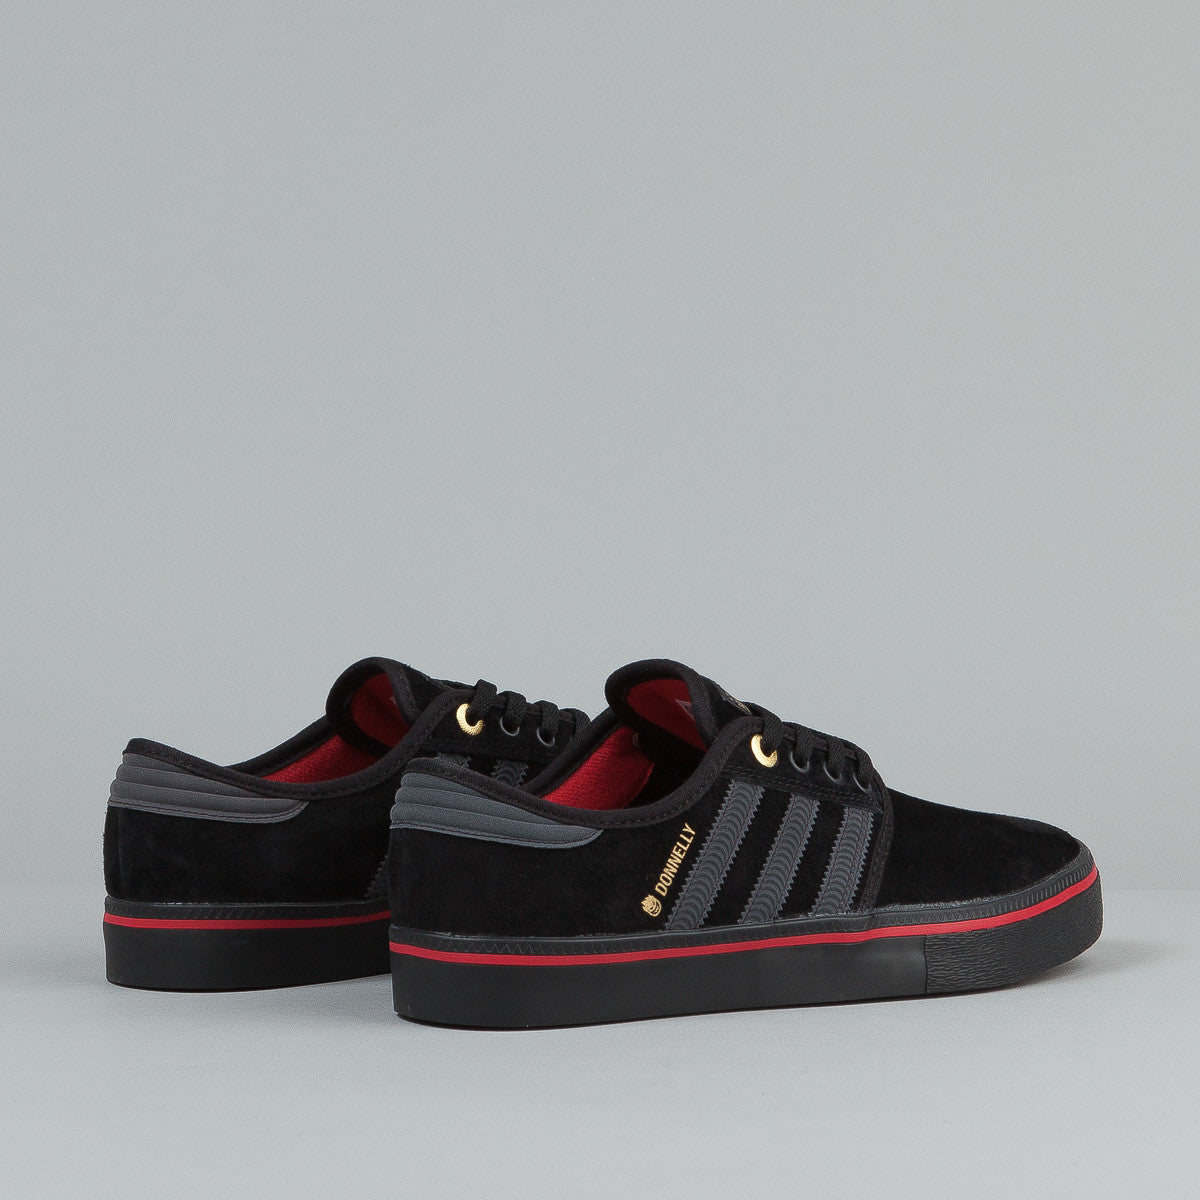 Adidas X Spitfire Seeley ADV Shoes - Black / Carbon / Red